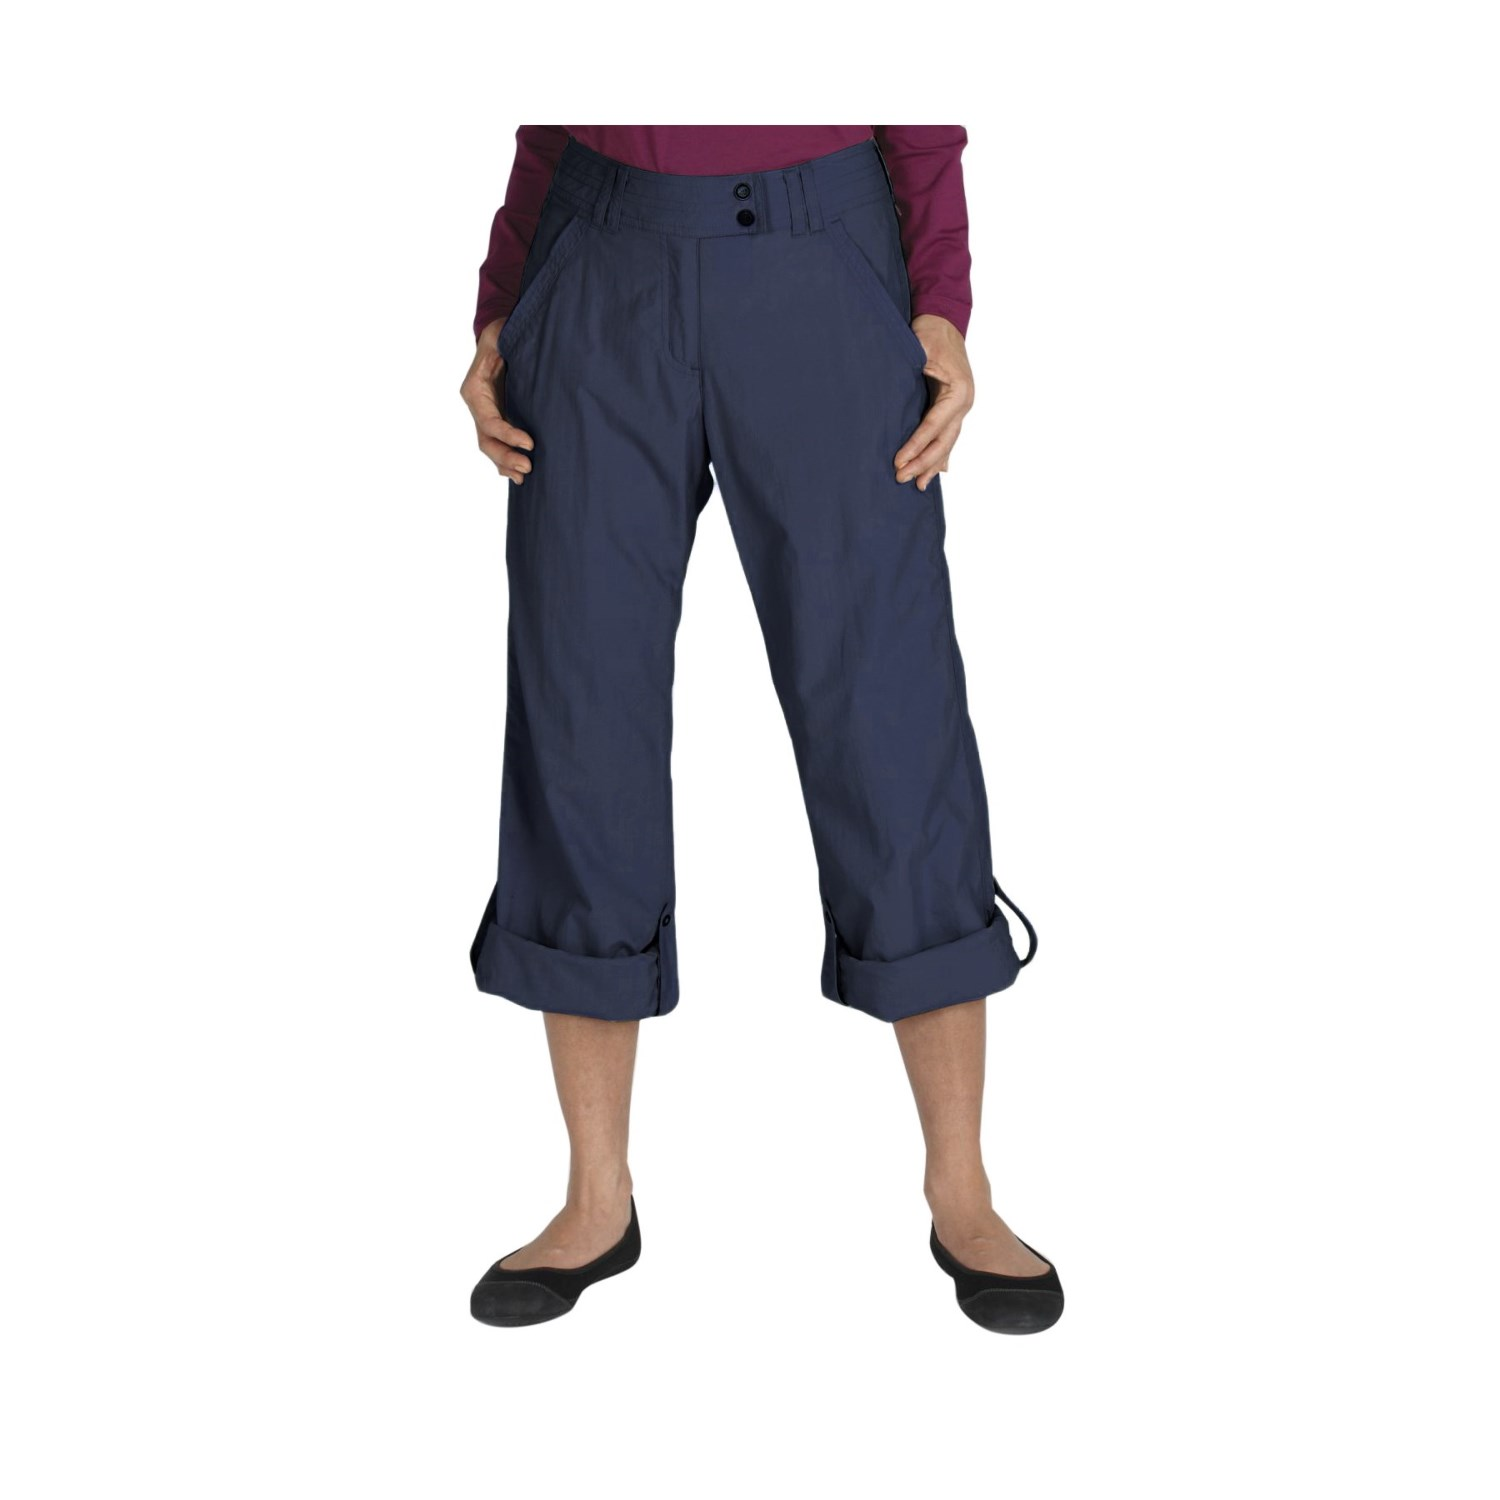 23 amazing rolled up pants women � playzoacom